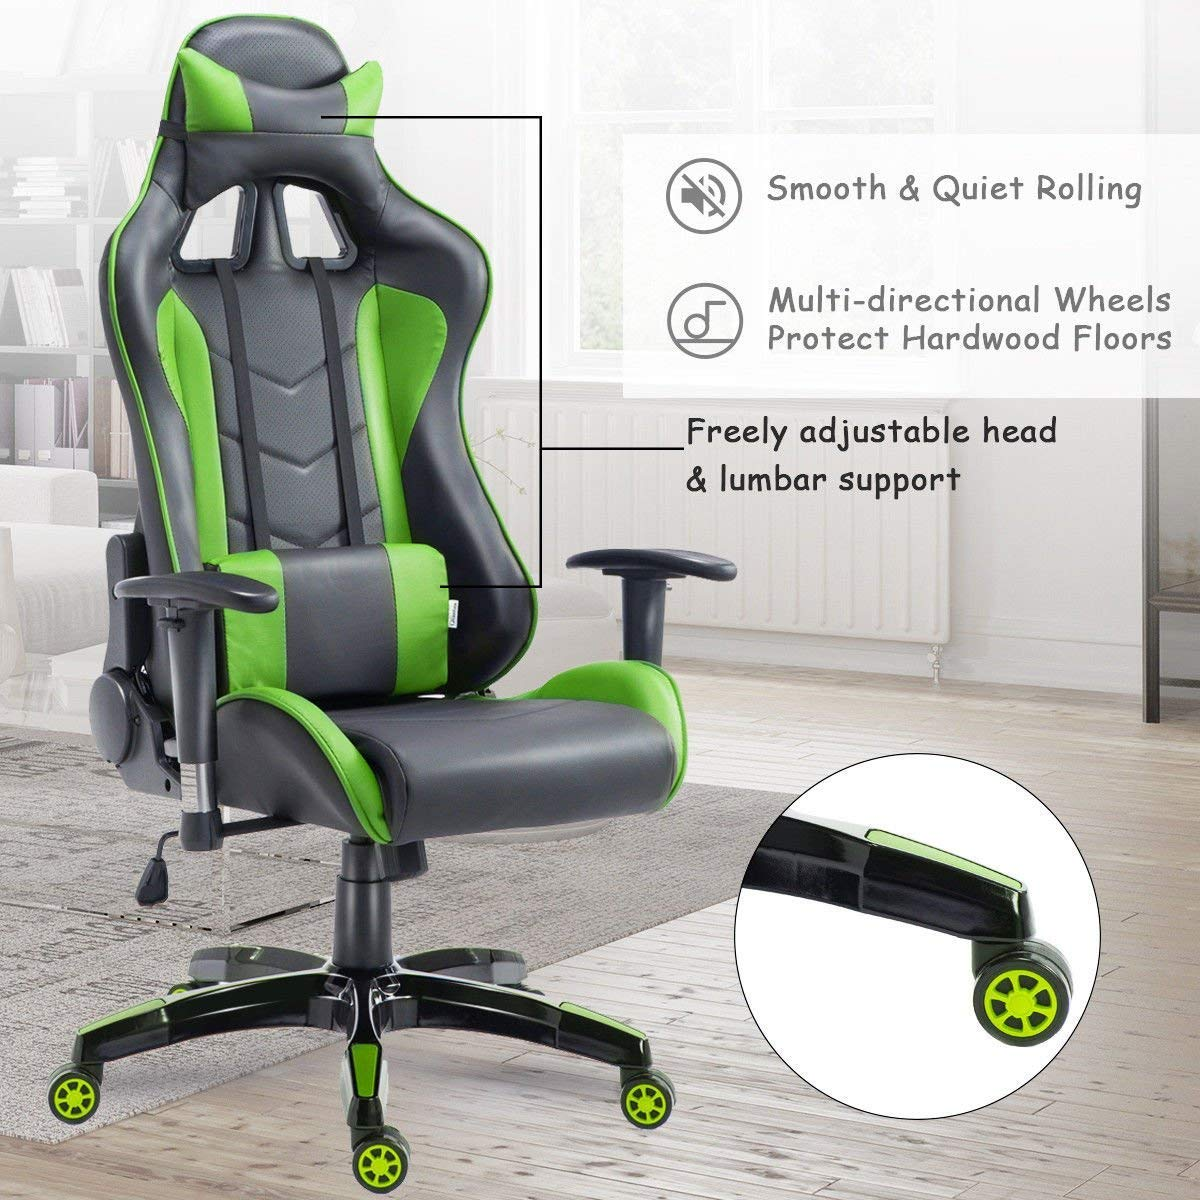 Black /& Yellow COSTWAY High Back Executive Racing Reclining Gaming Swivel PU Leather Office Chair Green